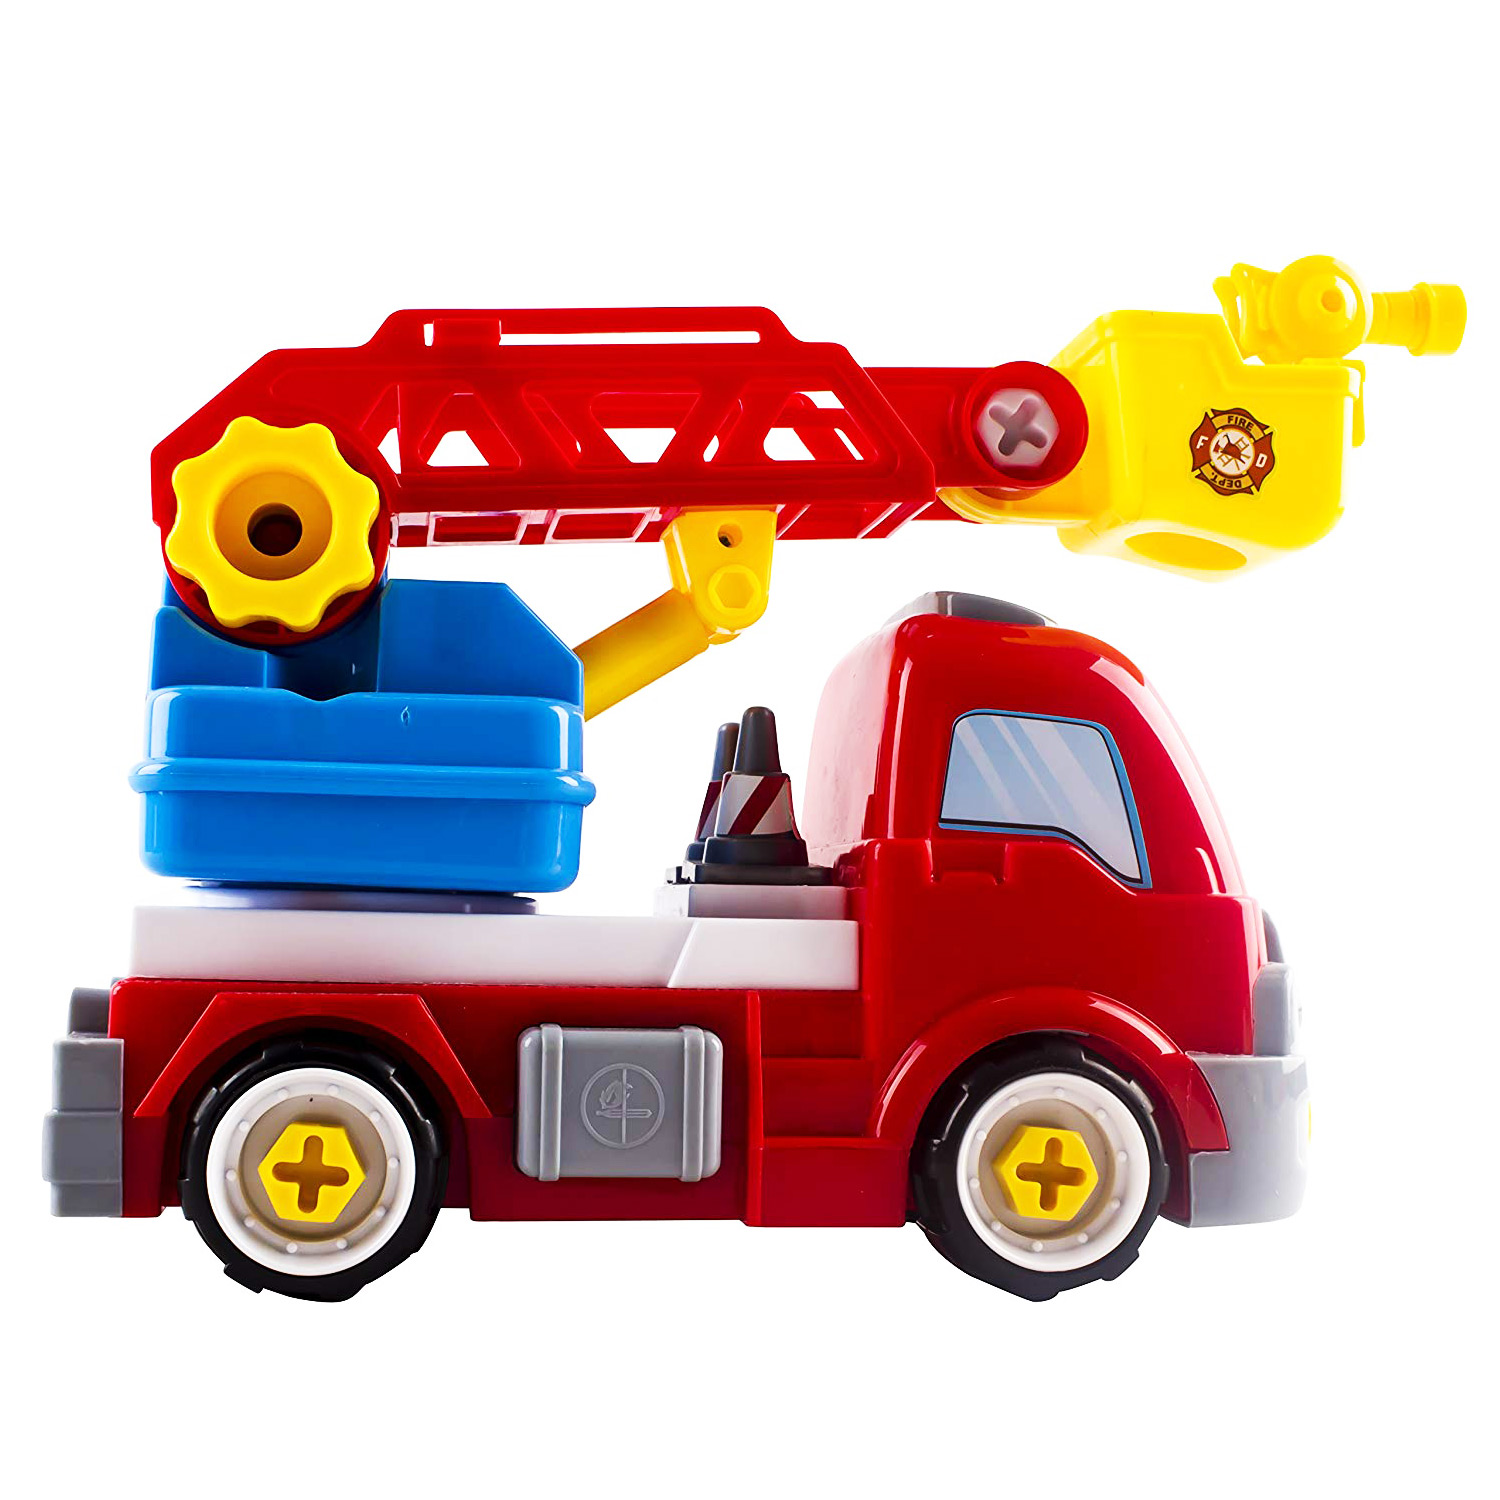 Fire Truck Toy Rescue HERO Take-A-Part DIY With Extending Ladder Educational Building Toys Vehicle Includes Screwdriver Wrench Removable Cones Perfect Take Apart Firetruck for Boys And Girls